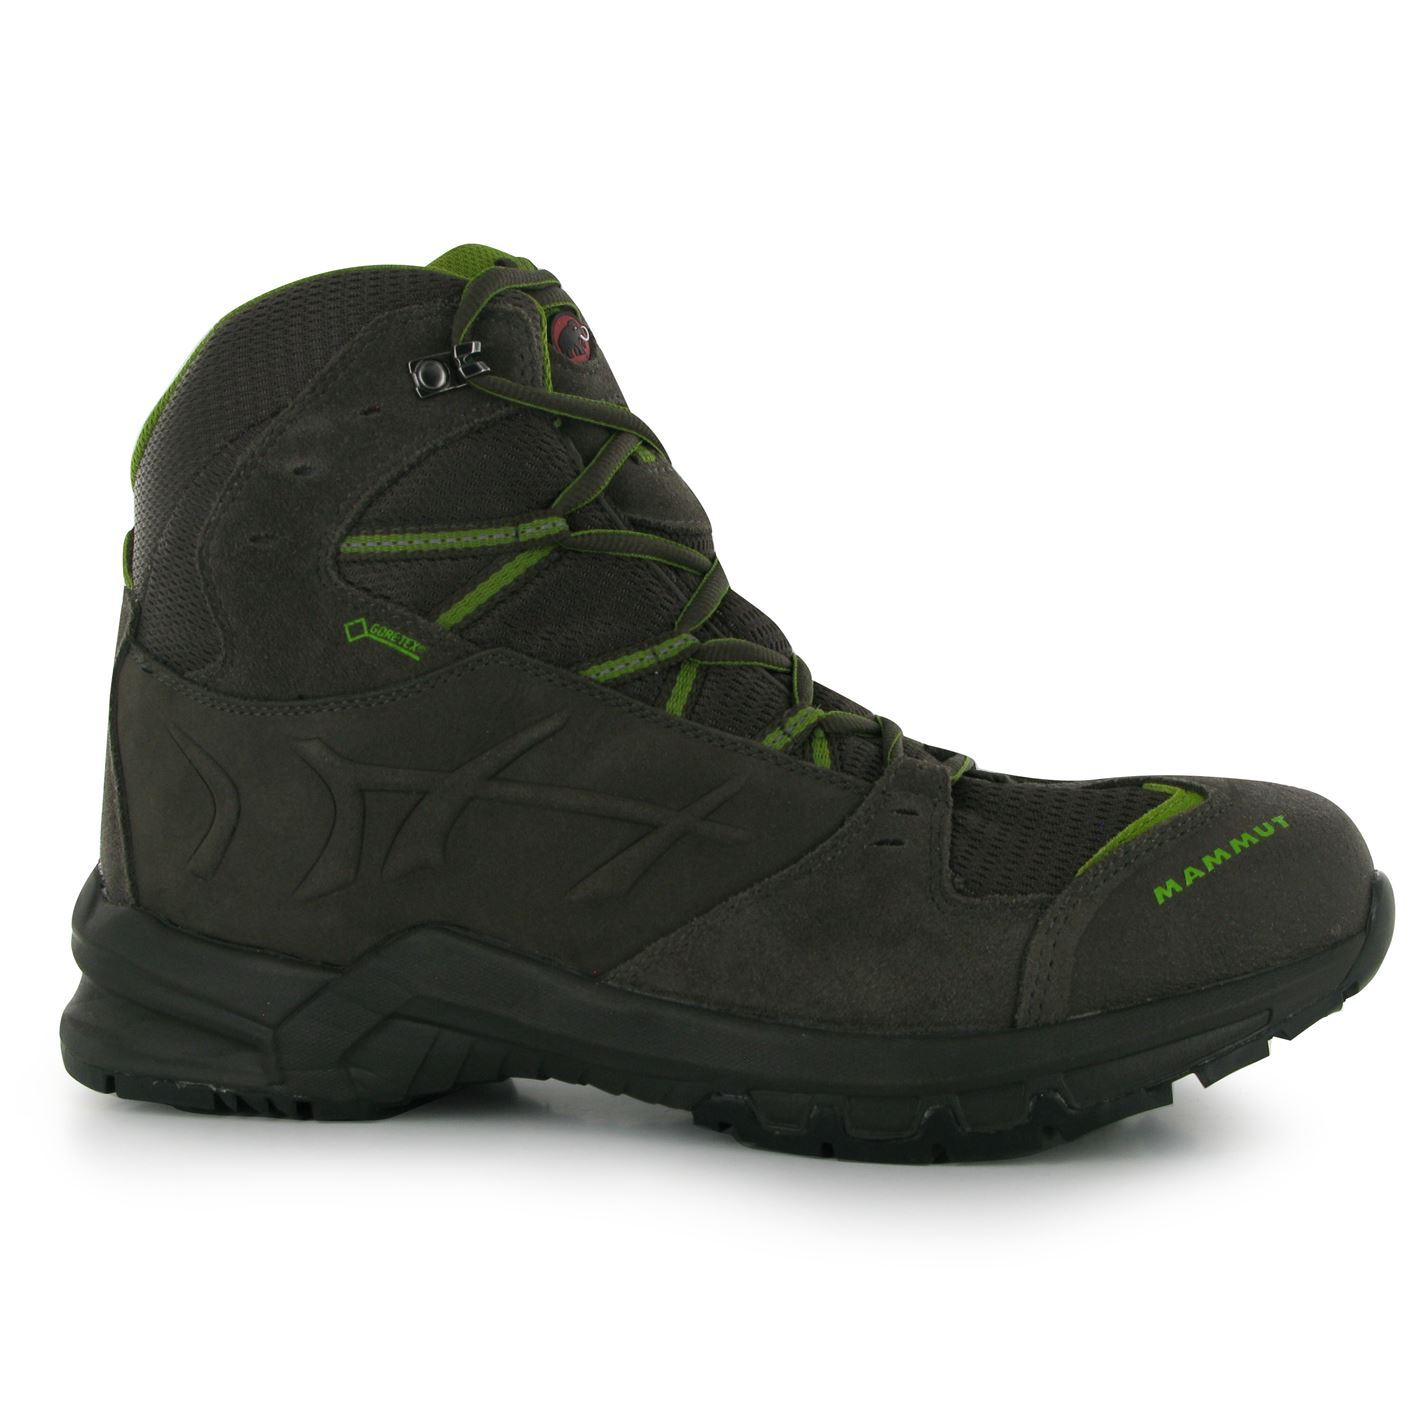 Mammut Mens Creon Gore Tex Walking Boots Lace Up Hiking